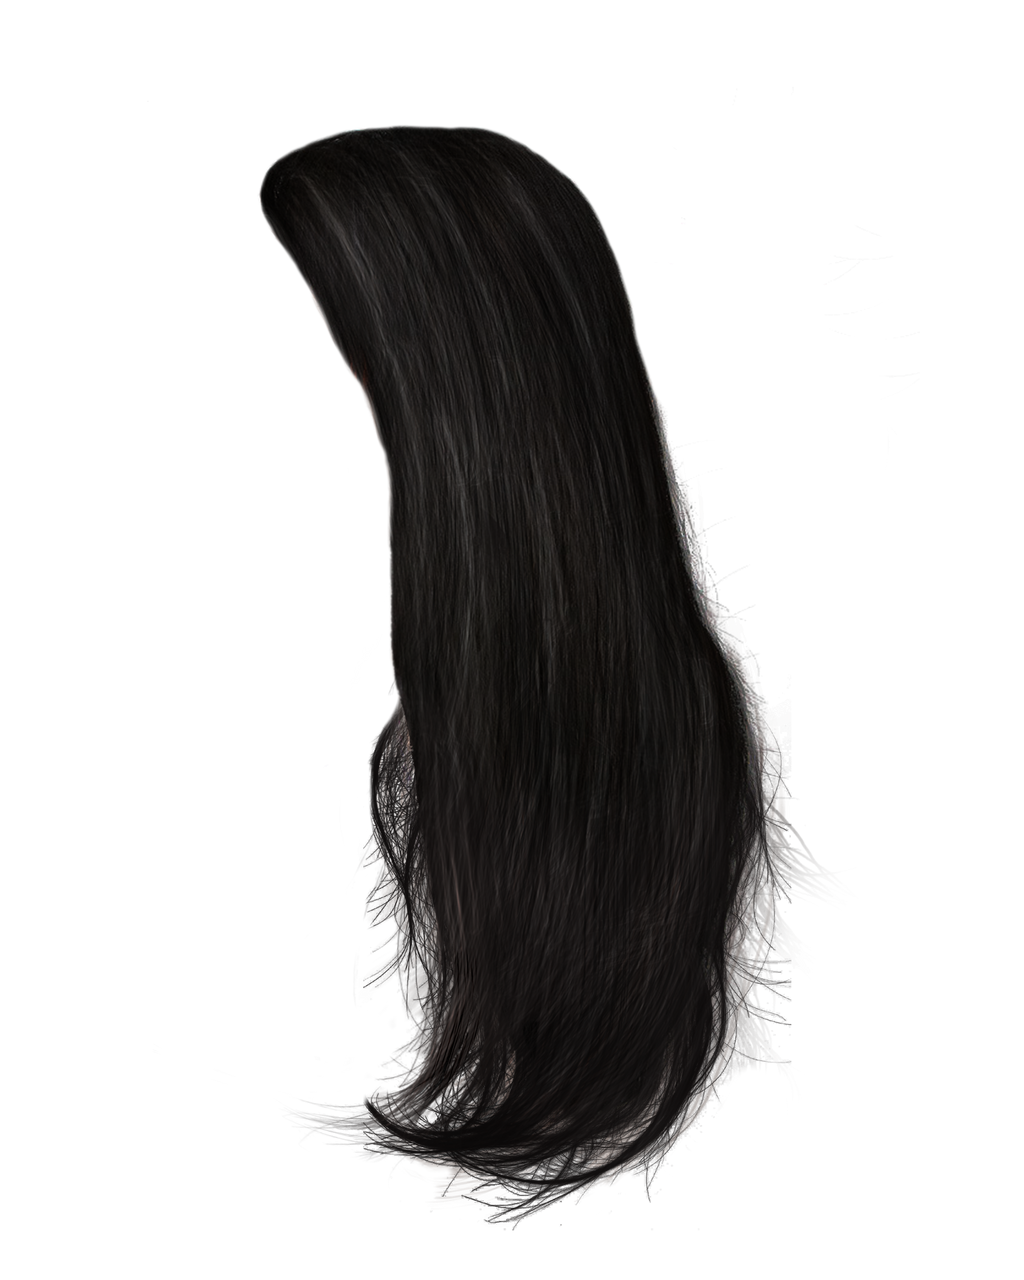 Hairstyle Png : png_hair_by_moonglowlilly-d6mafpj.png